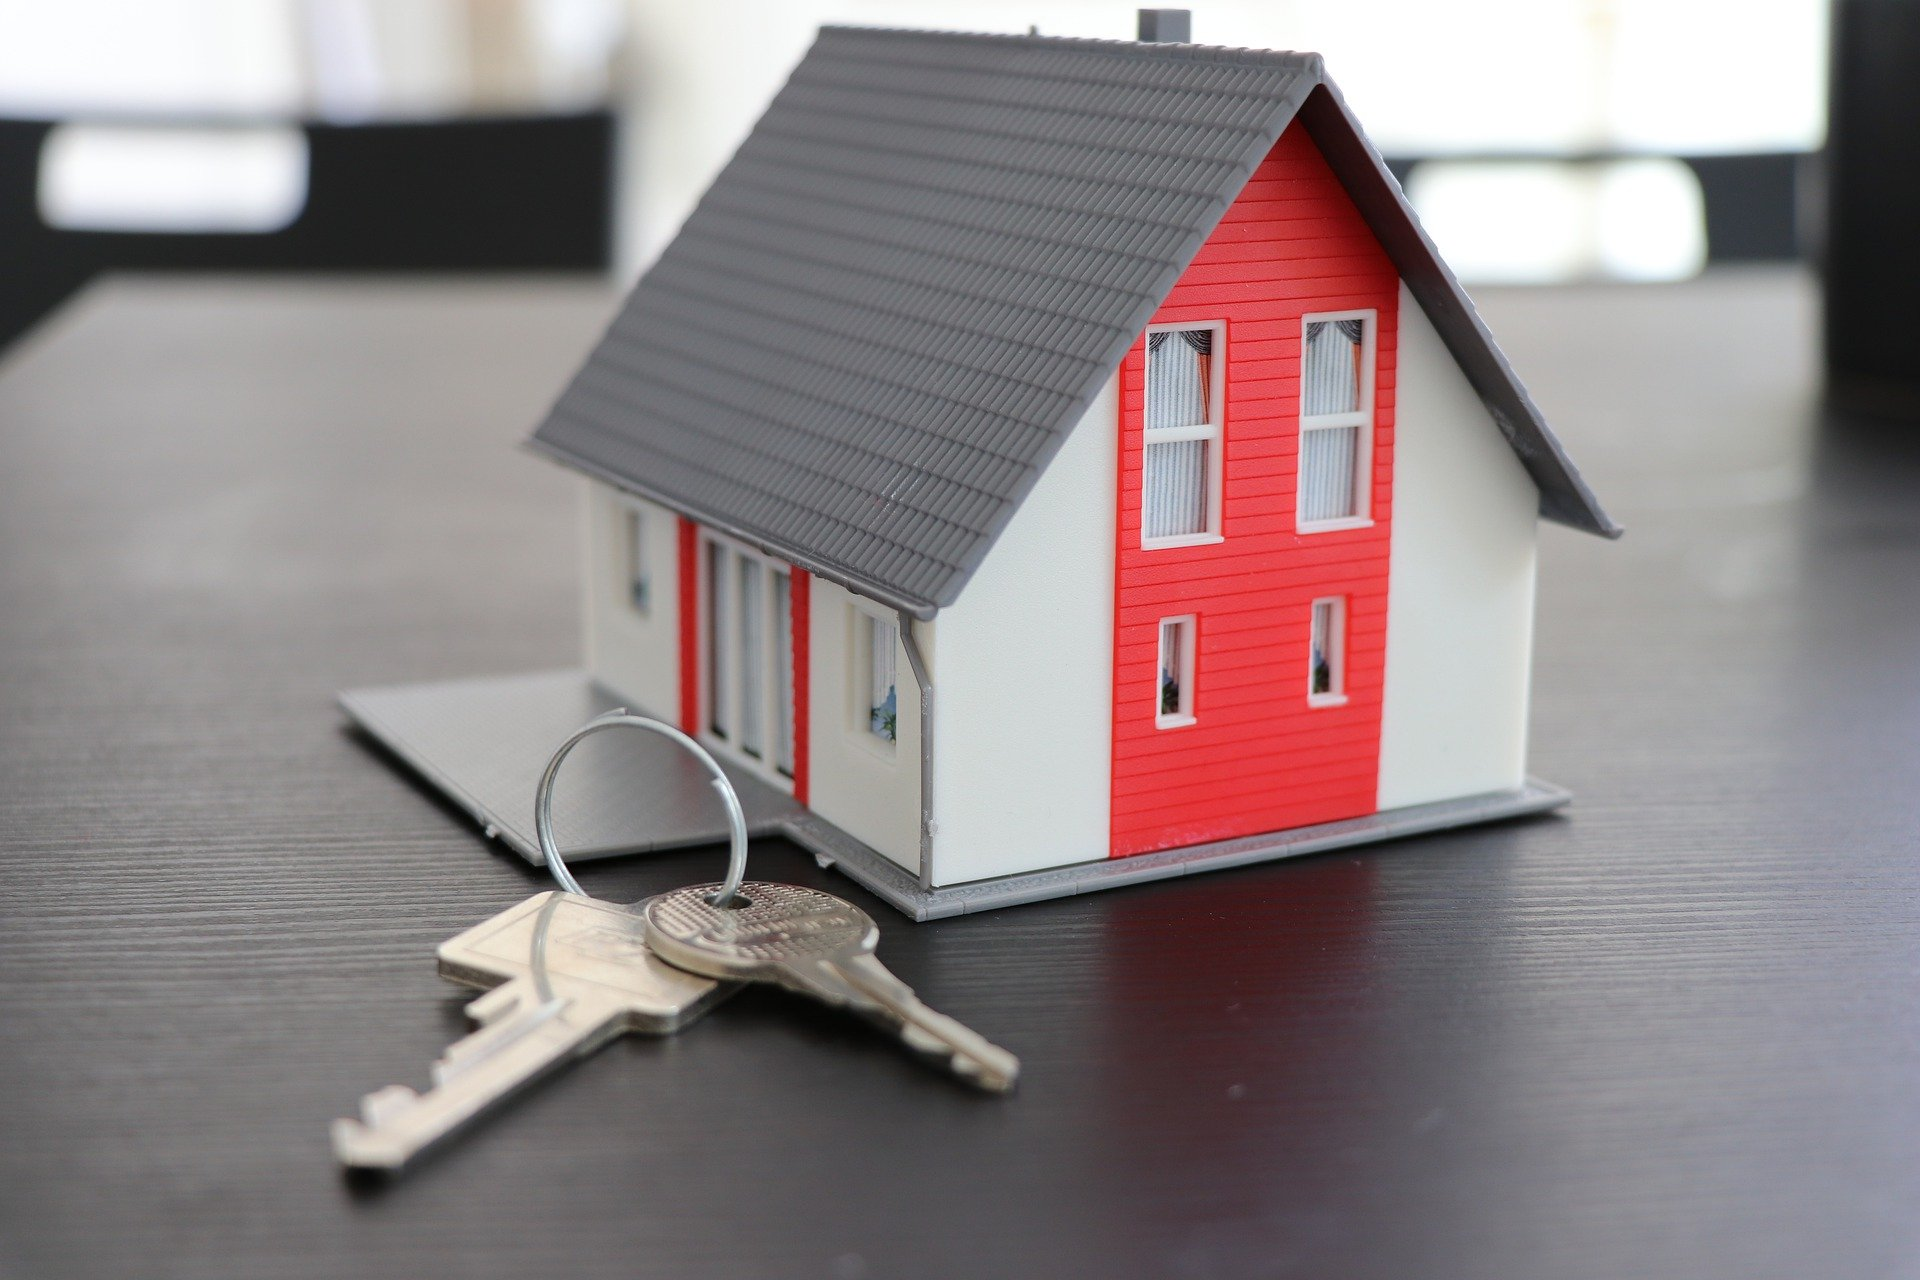 north west property investment opportunities